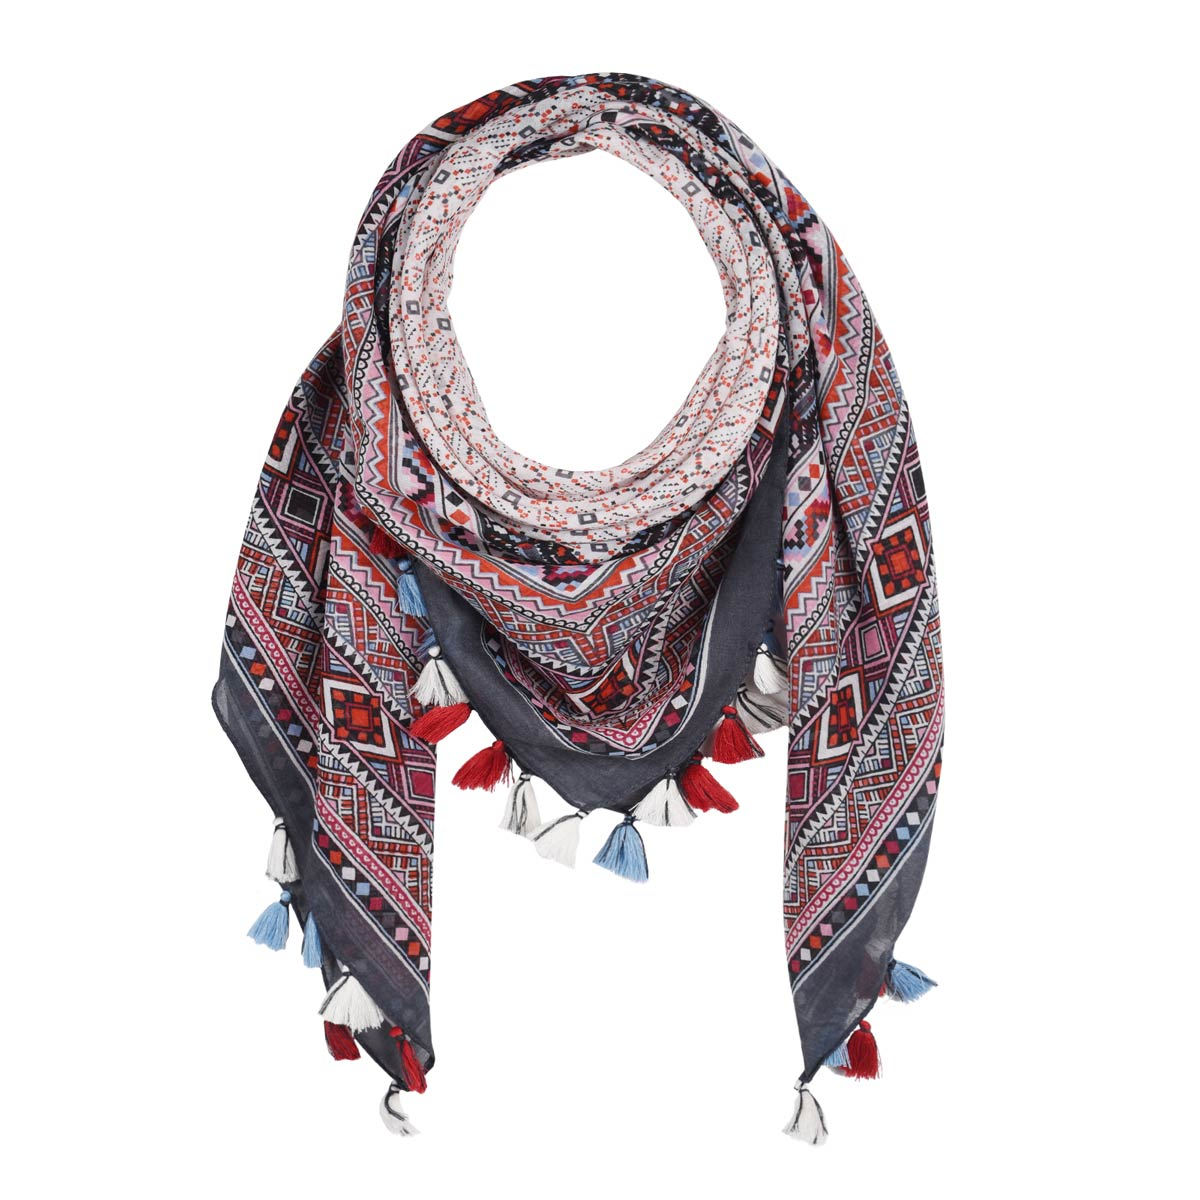 AT-06131-F12-foulard-fantaisie-ethnique-multicolore